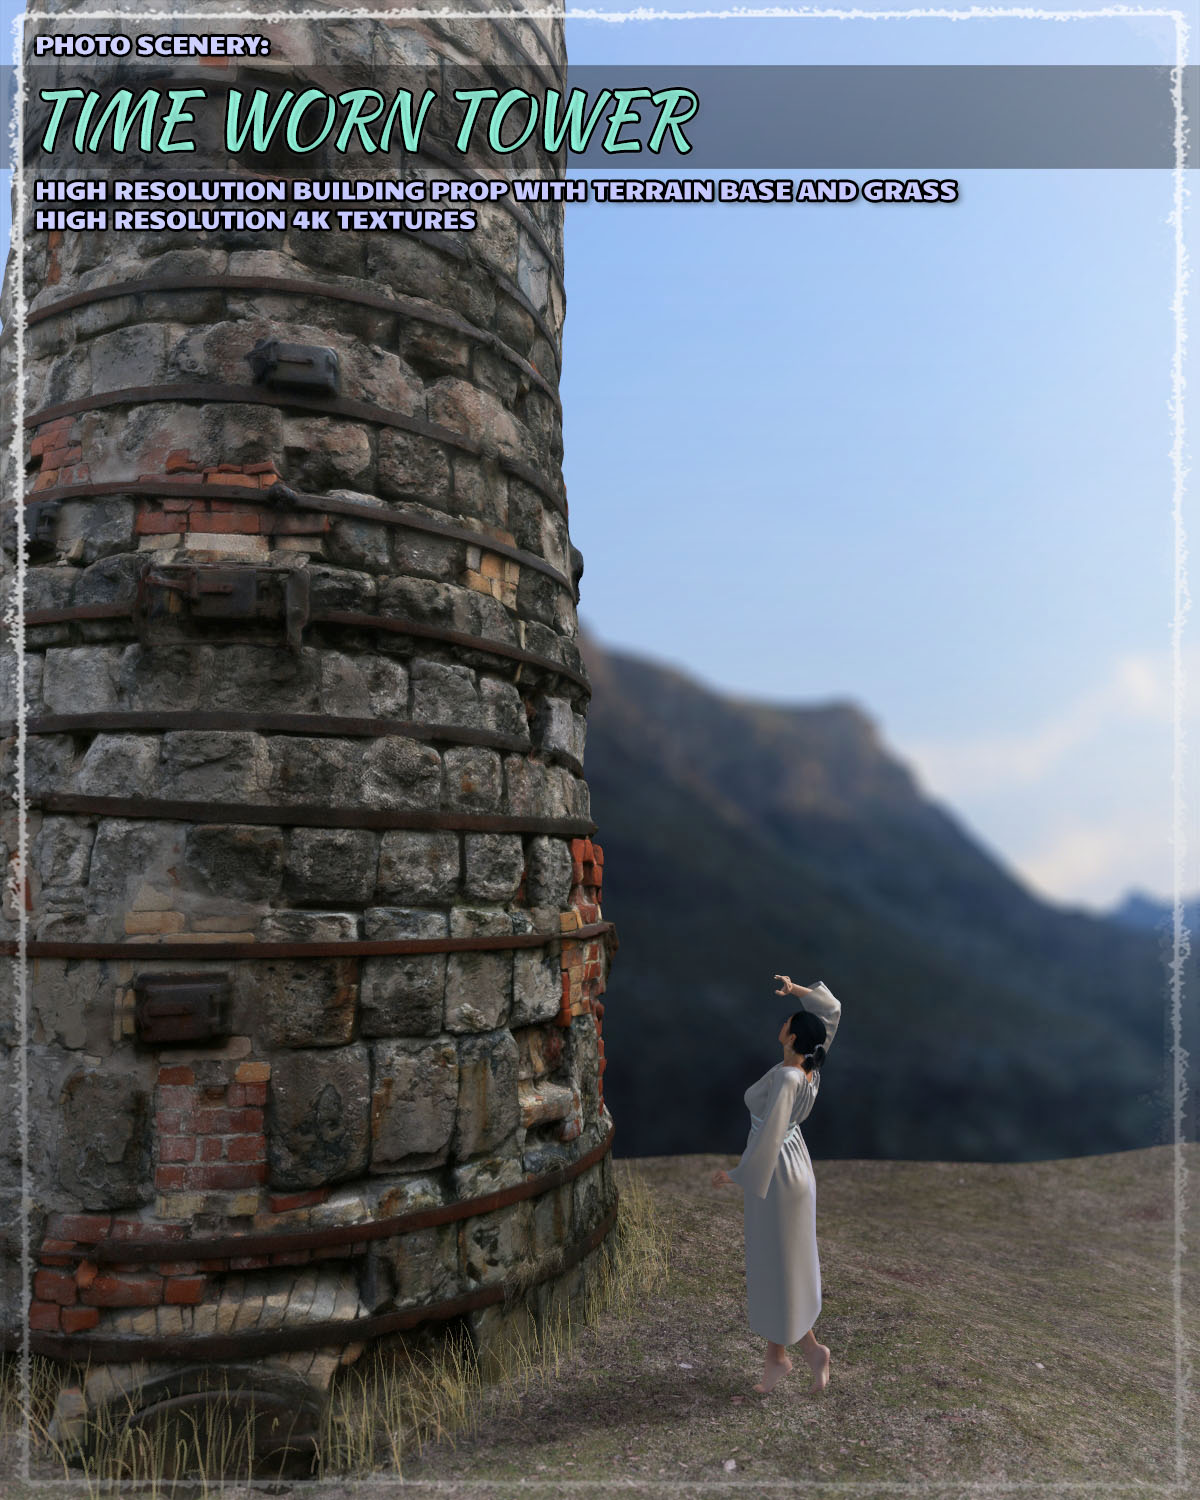 Photo Scenery: Timeworn Tower - Extended License